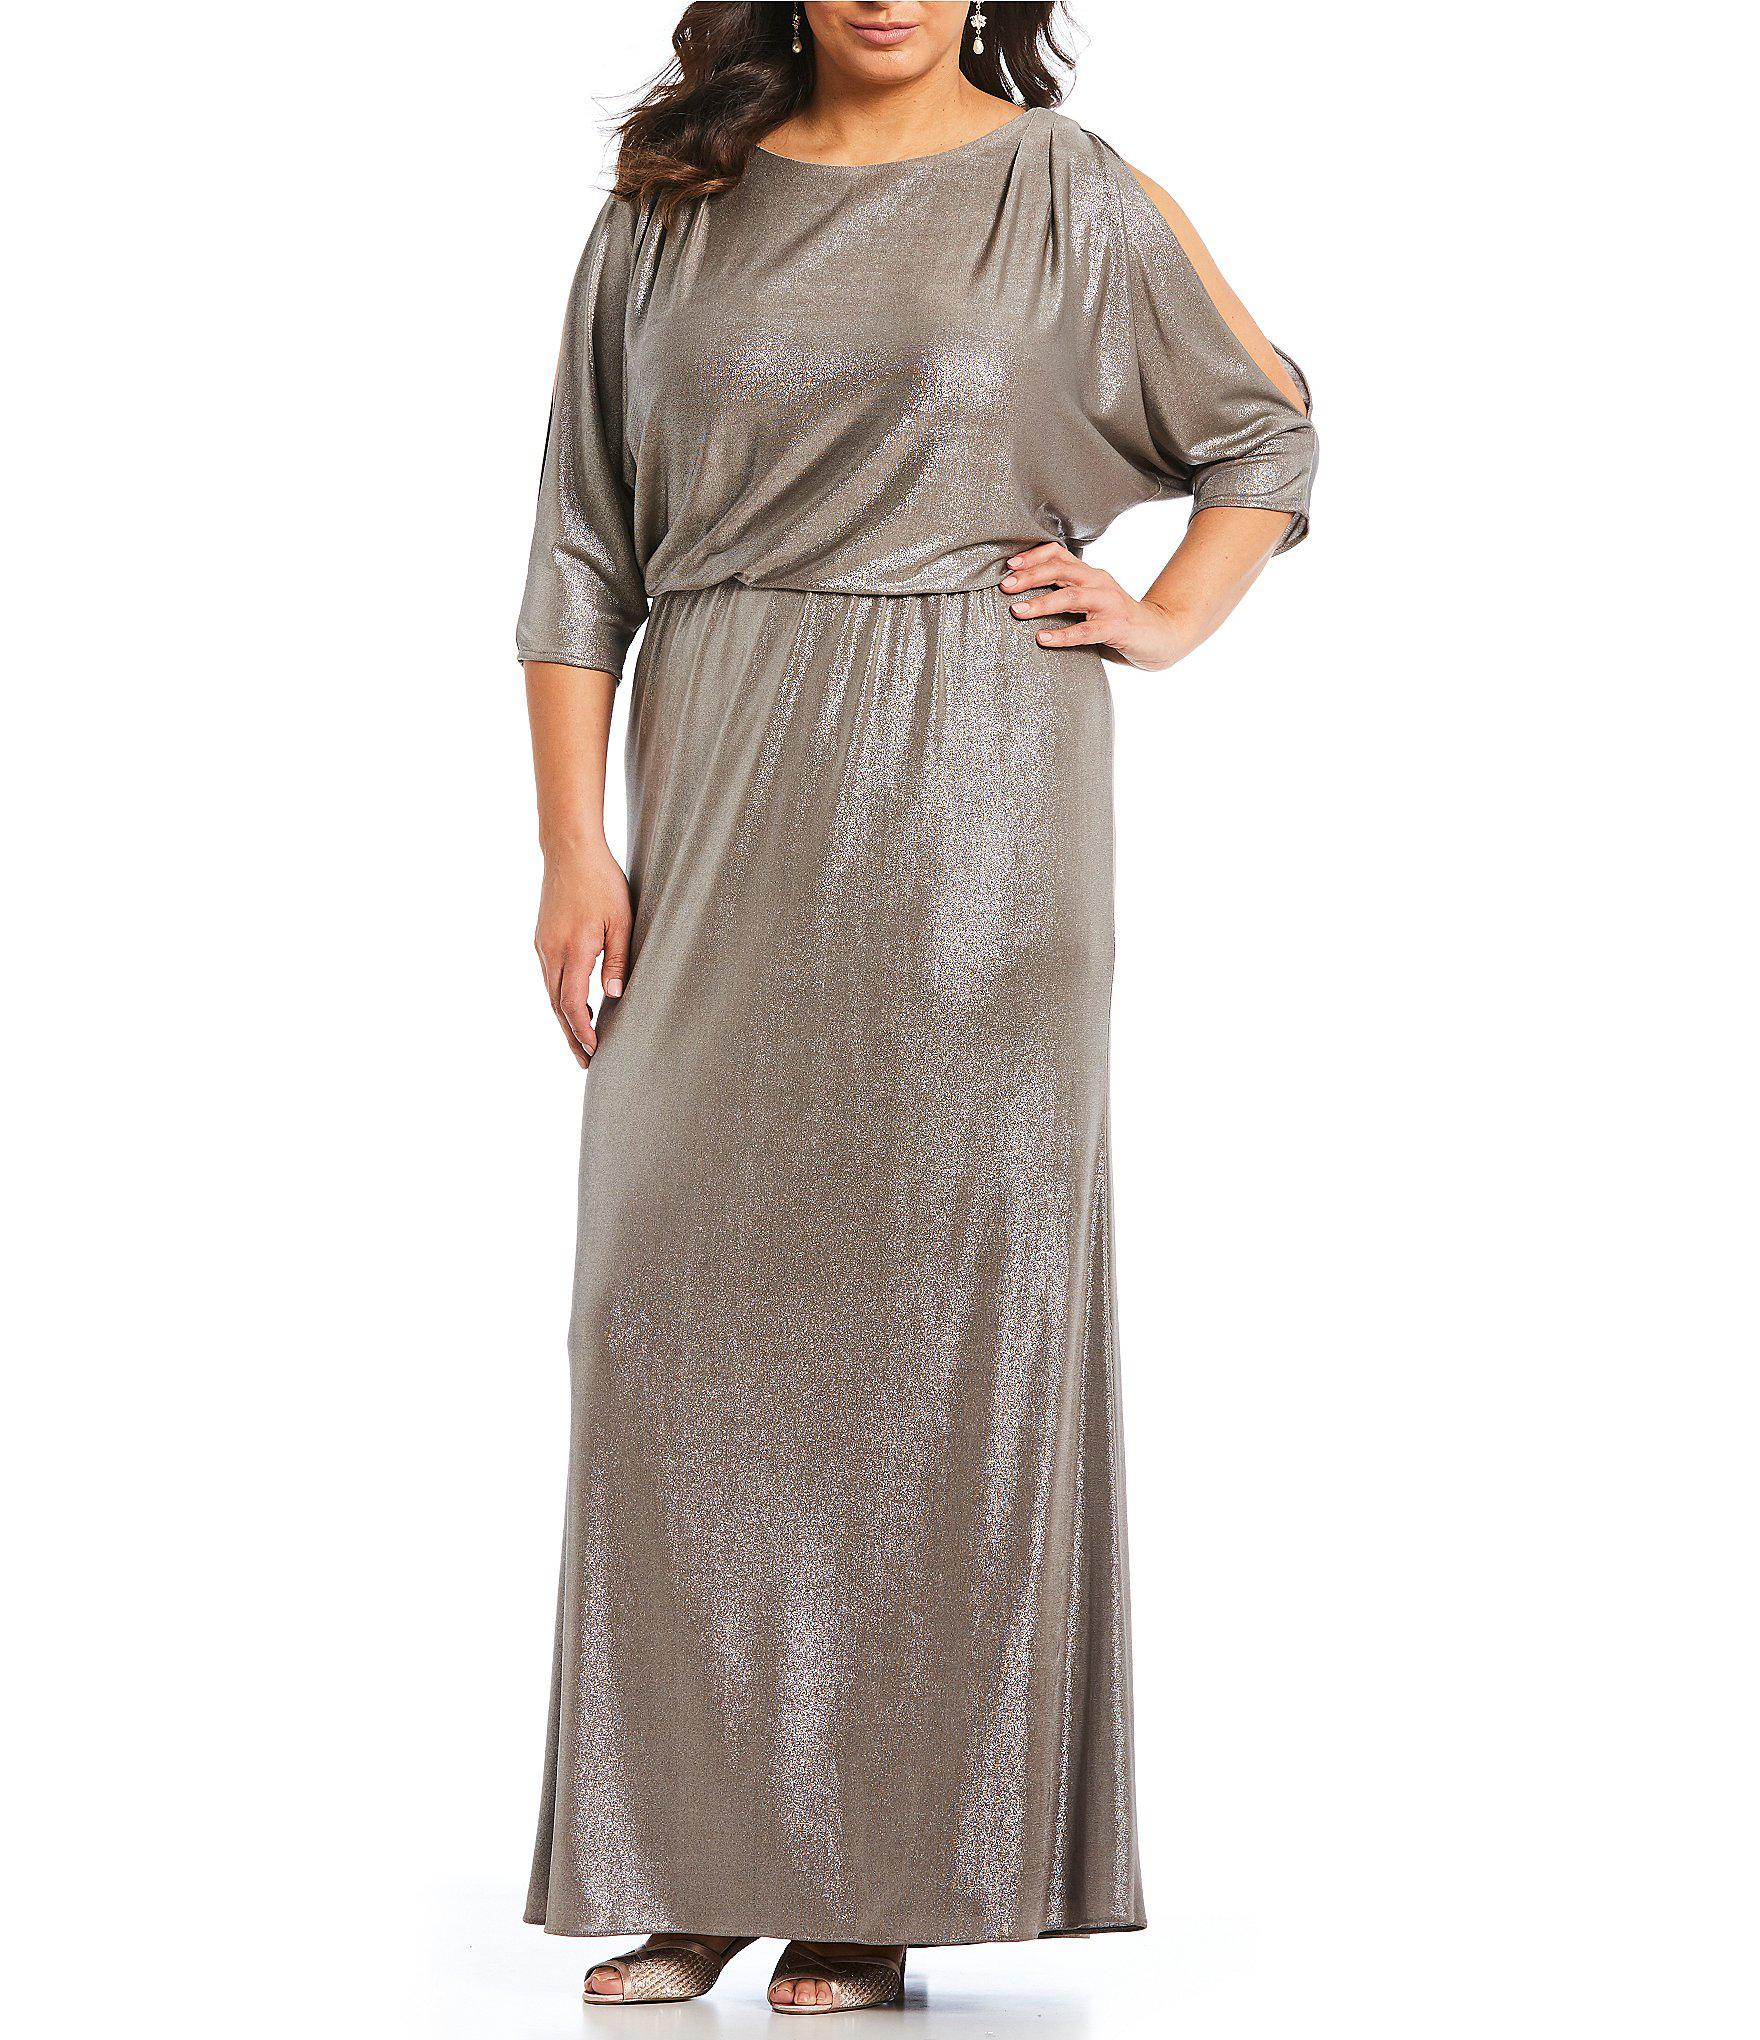 04aca7dd924 Lyst - Adrianna Papell Plus Size Foiled Jersey Blouson Gown in Metallic